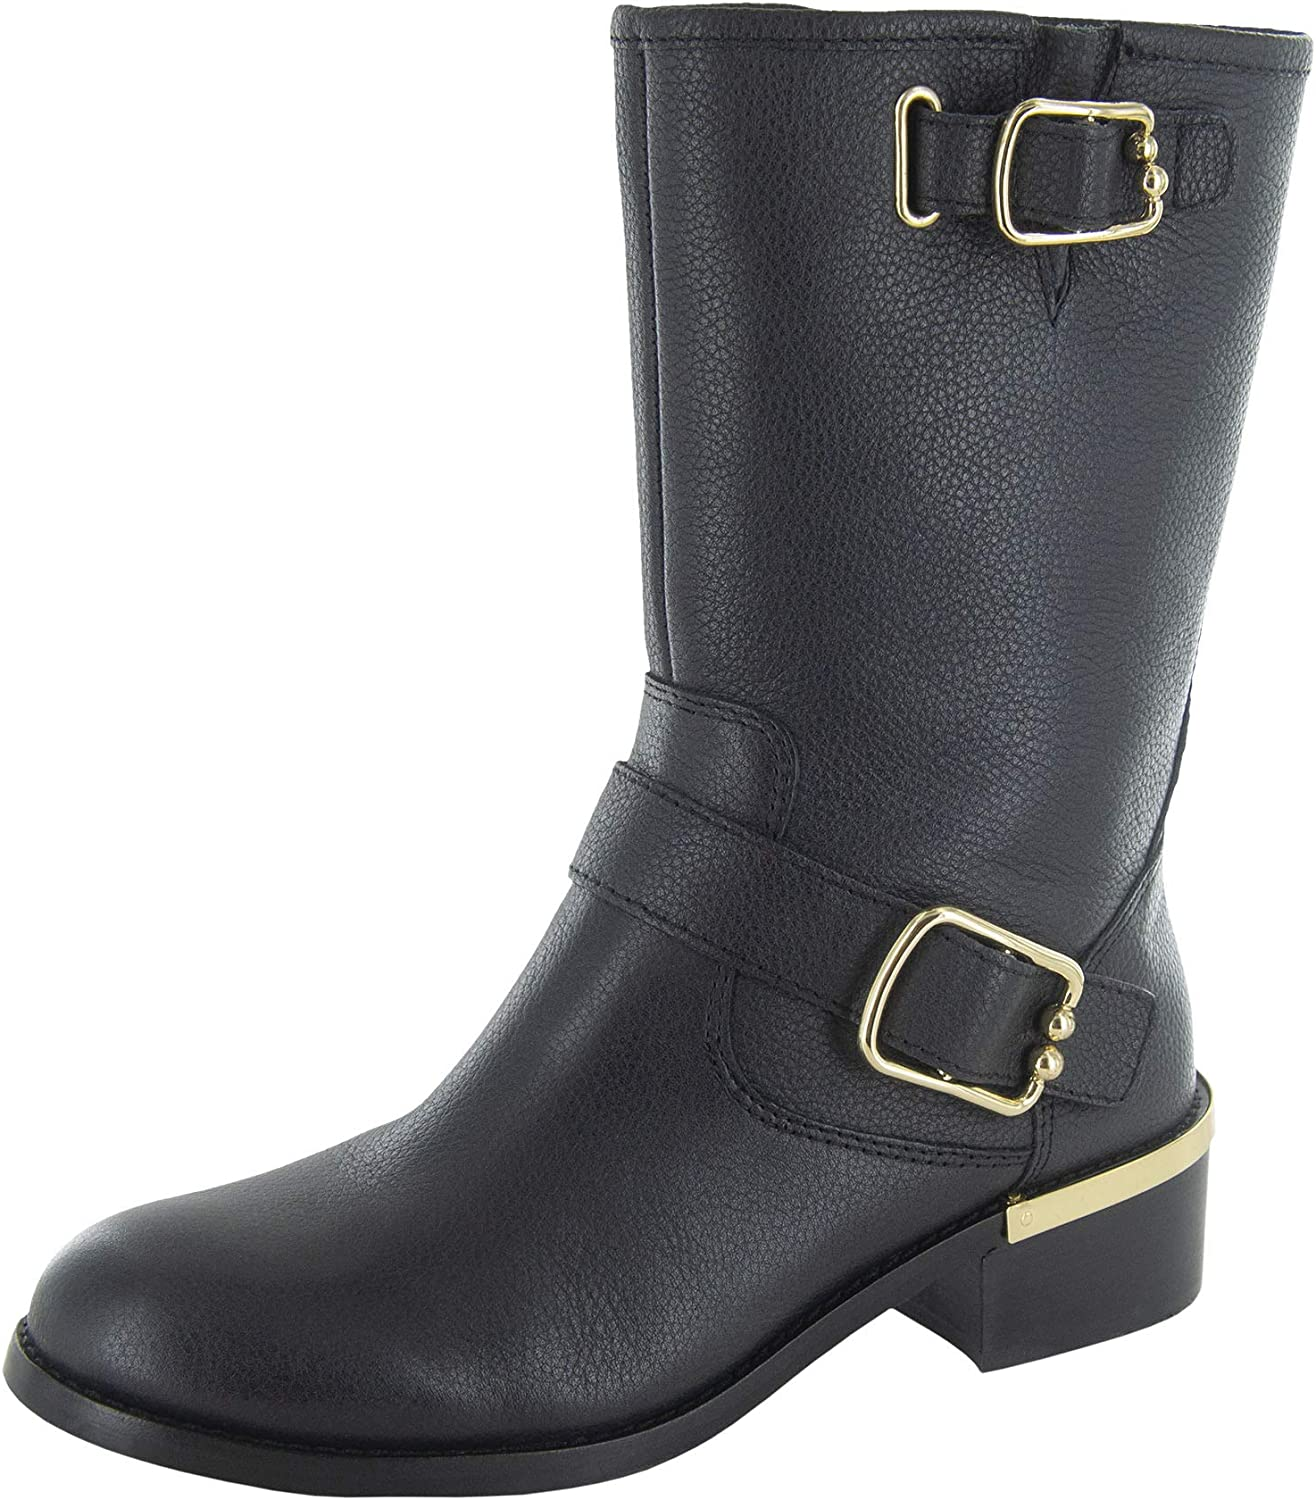 Vince Camuto Womens Wantilla Leather Closed Toe Mid-Calf Fashion Boots